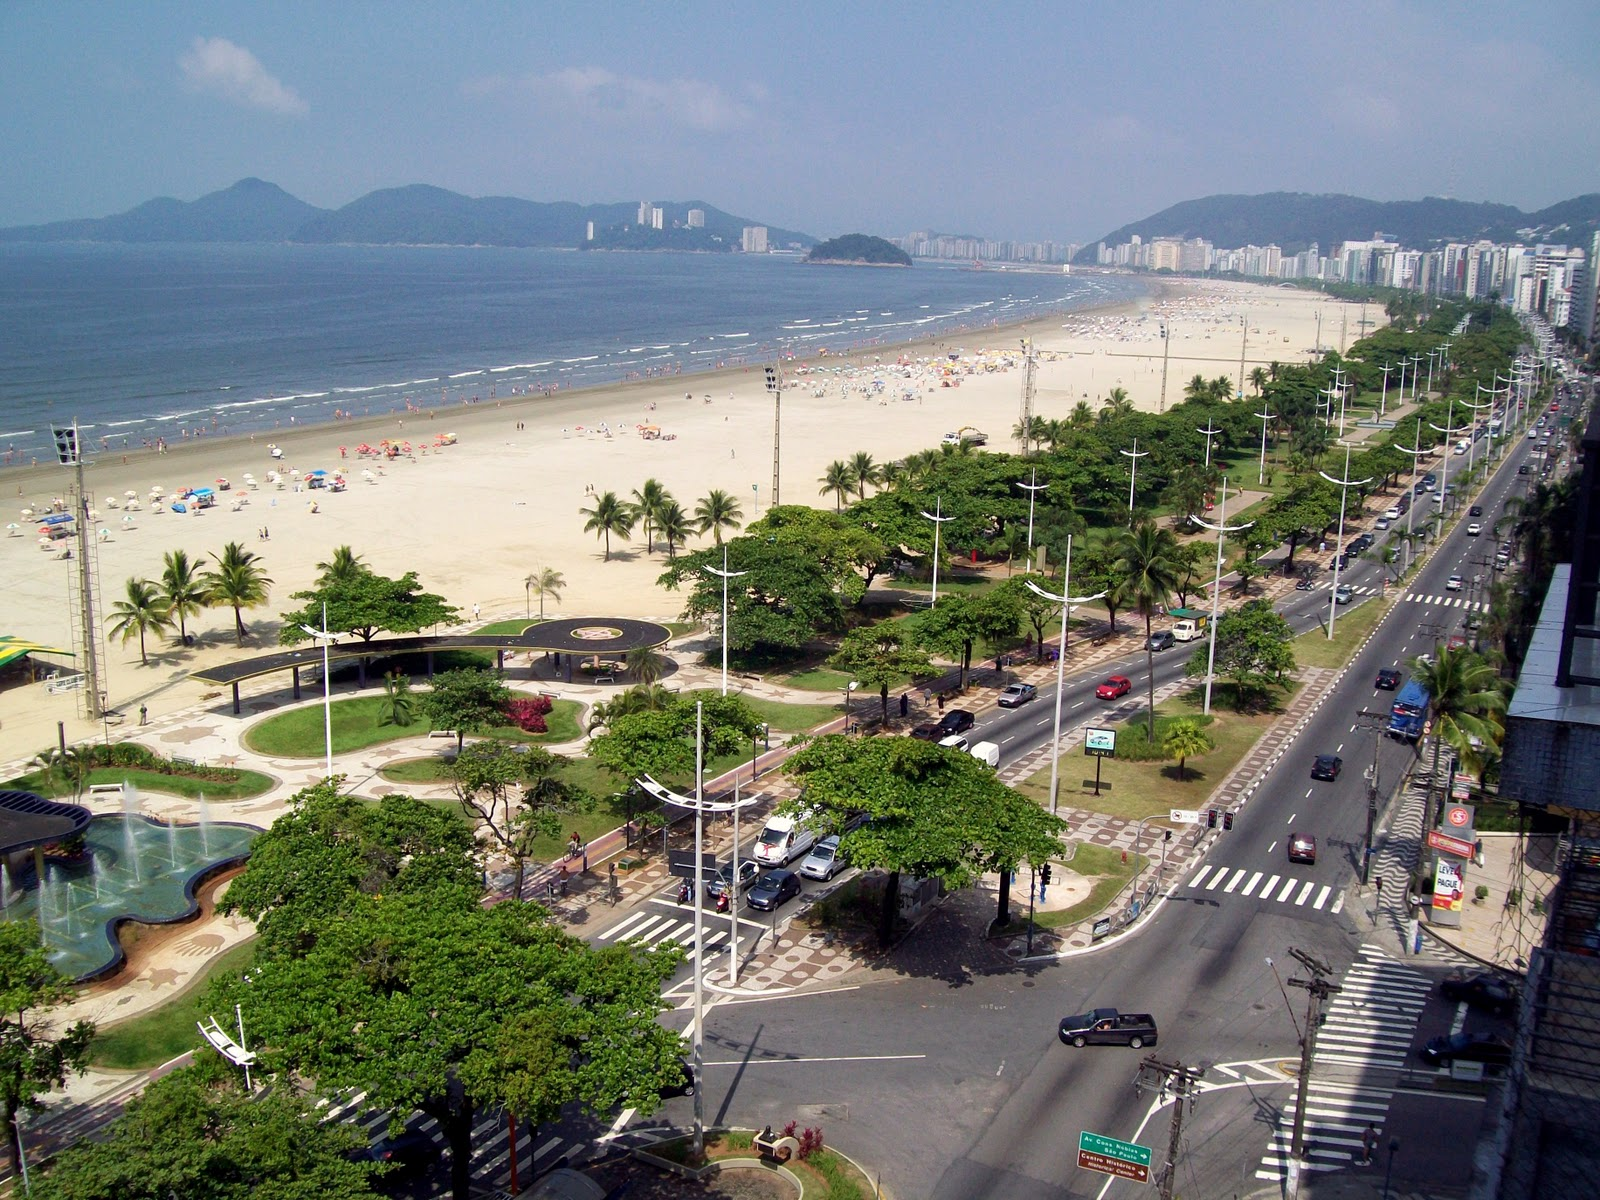 Santos the longest beach garden in the world   Places to Visit Brazil 1600x1200